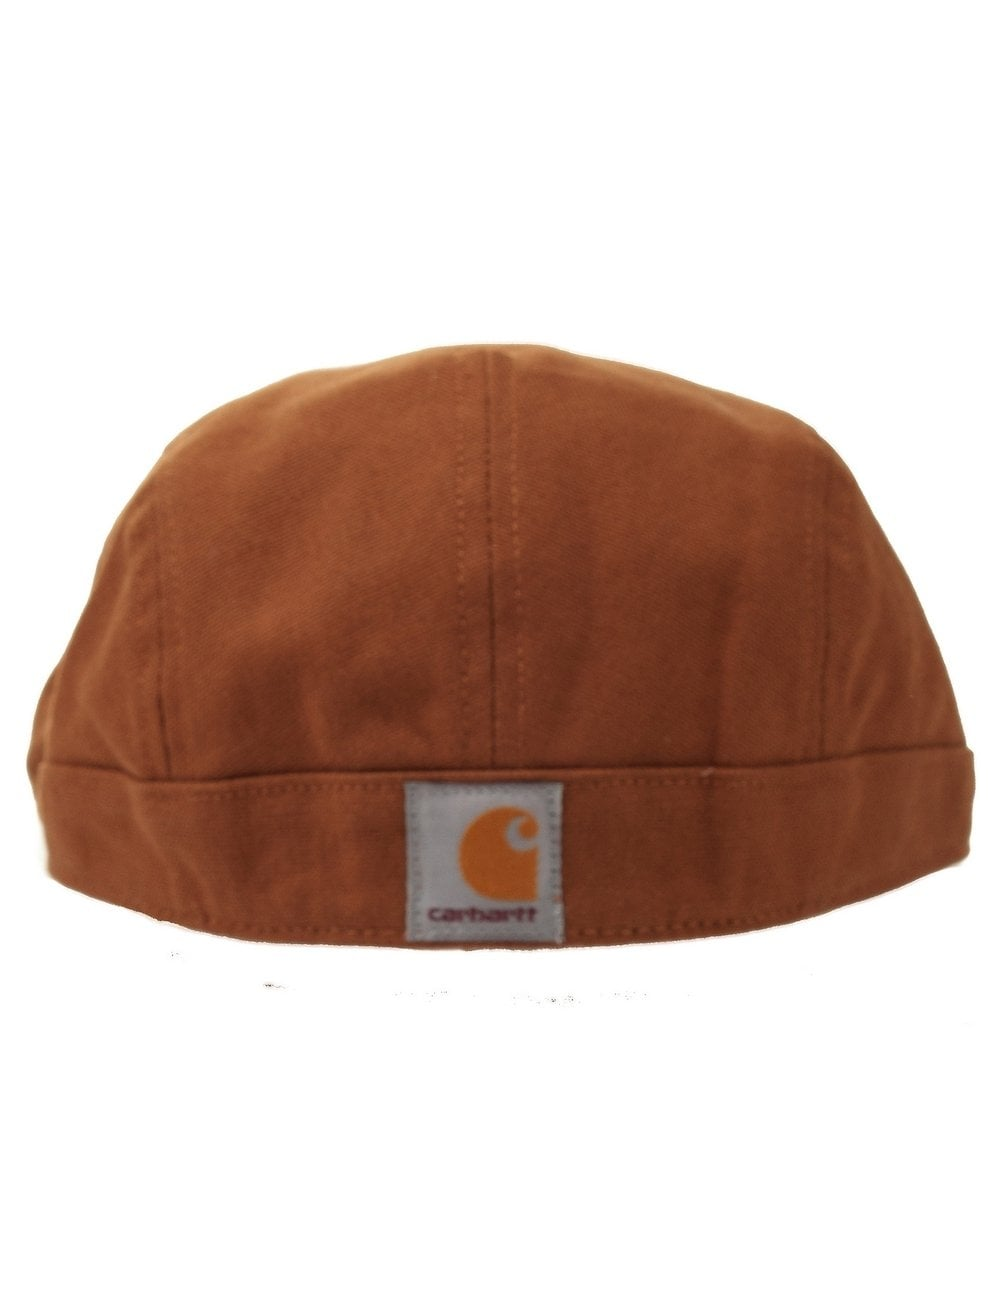 9de55c46cb152 Carhartt WIP Driver Cap - Hamilton Brown - Accessories from Fat ...